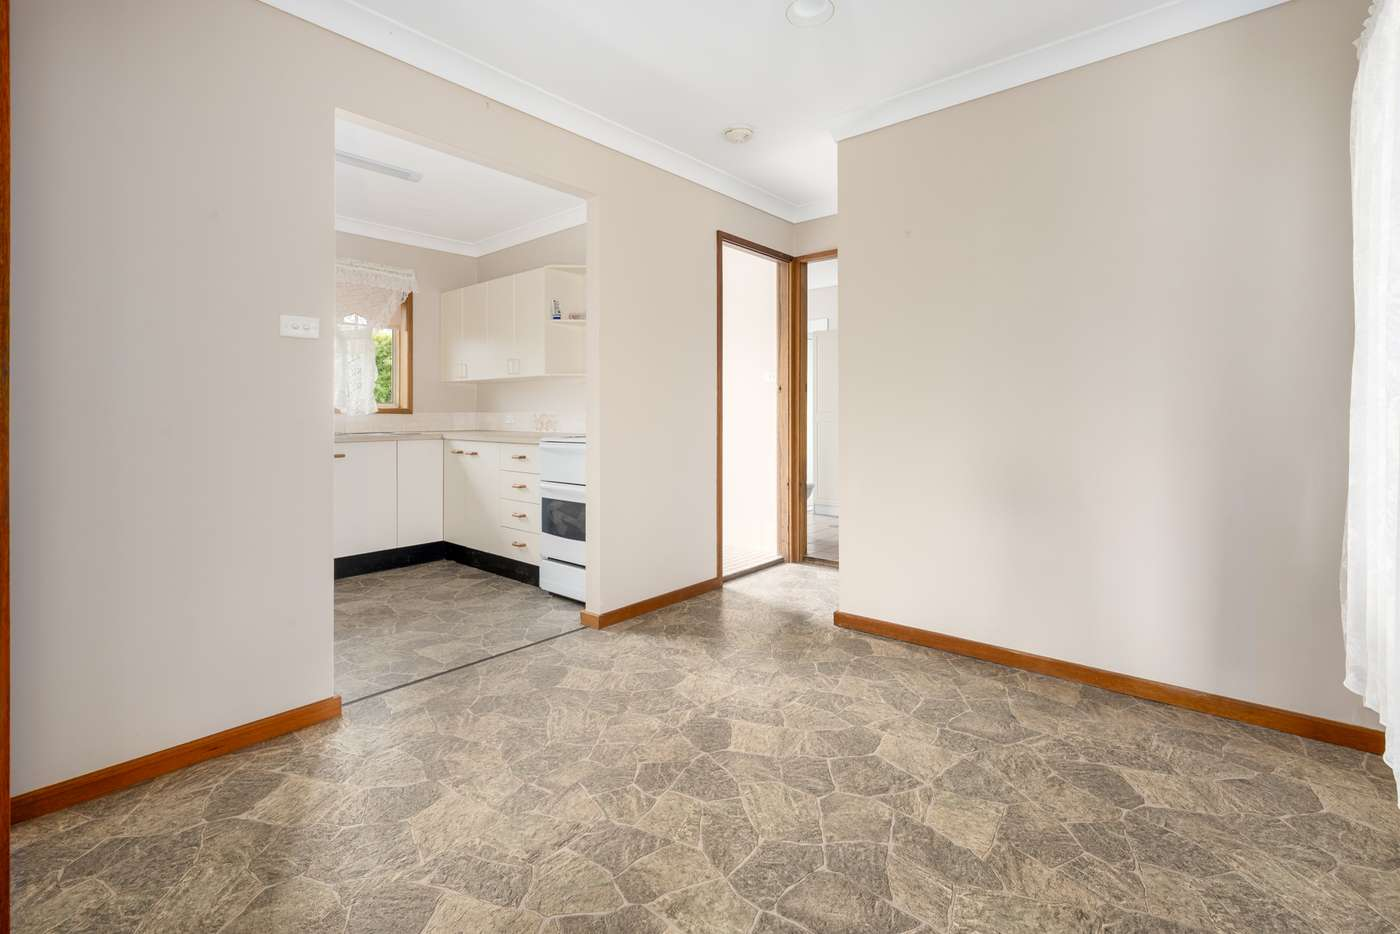 Fifth view of Homely unit listing, 1/111 George Street, East Maitland NSW 2323